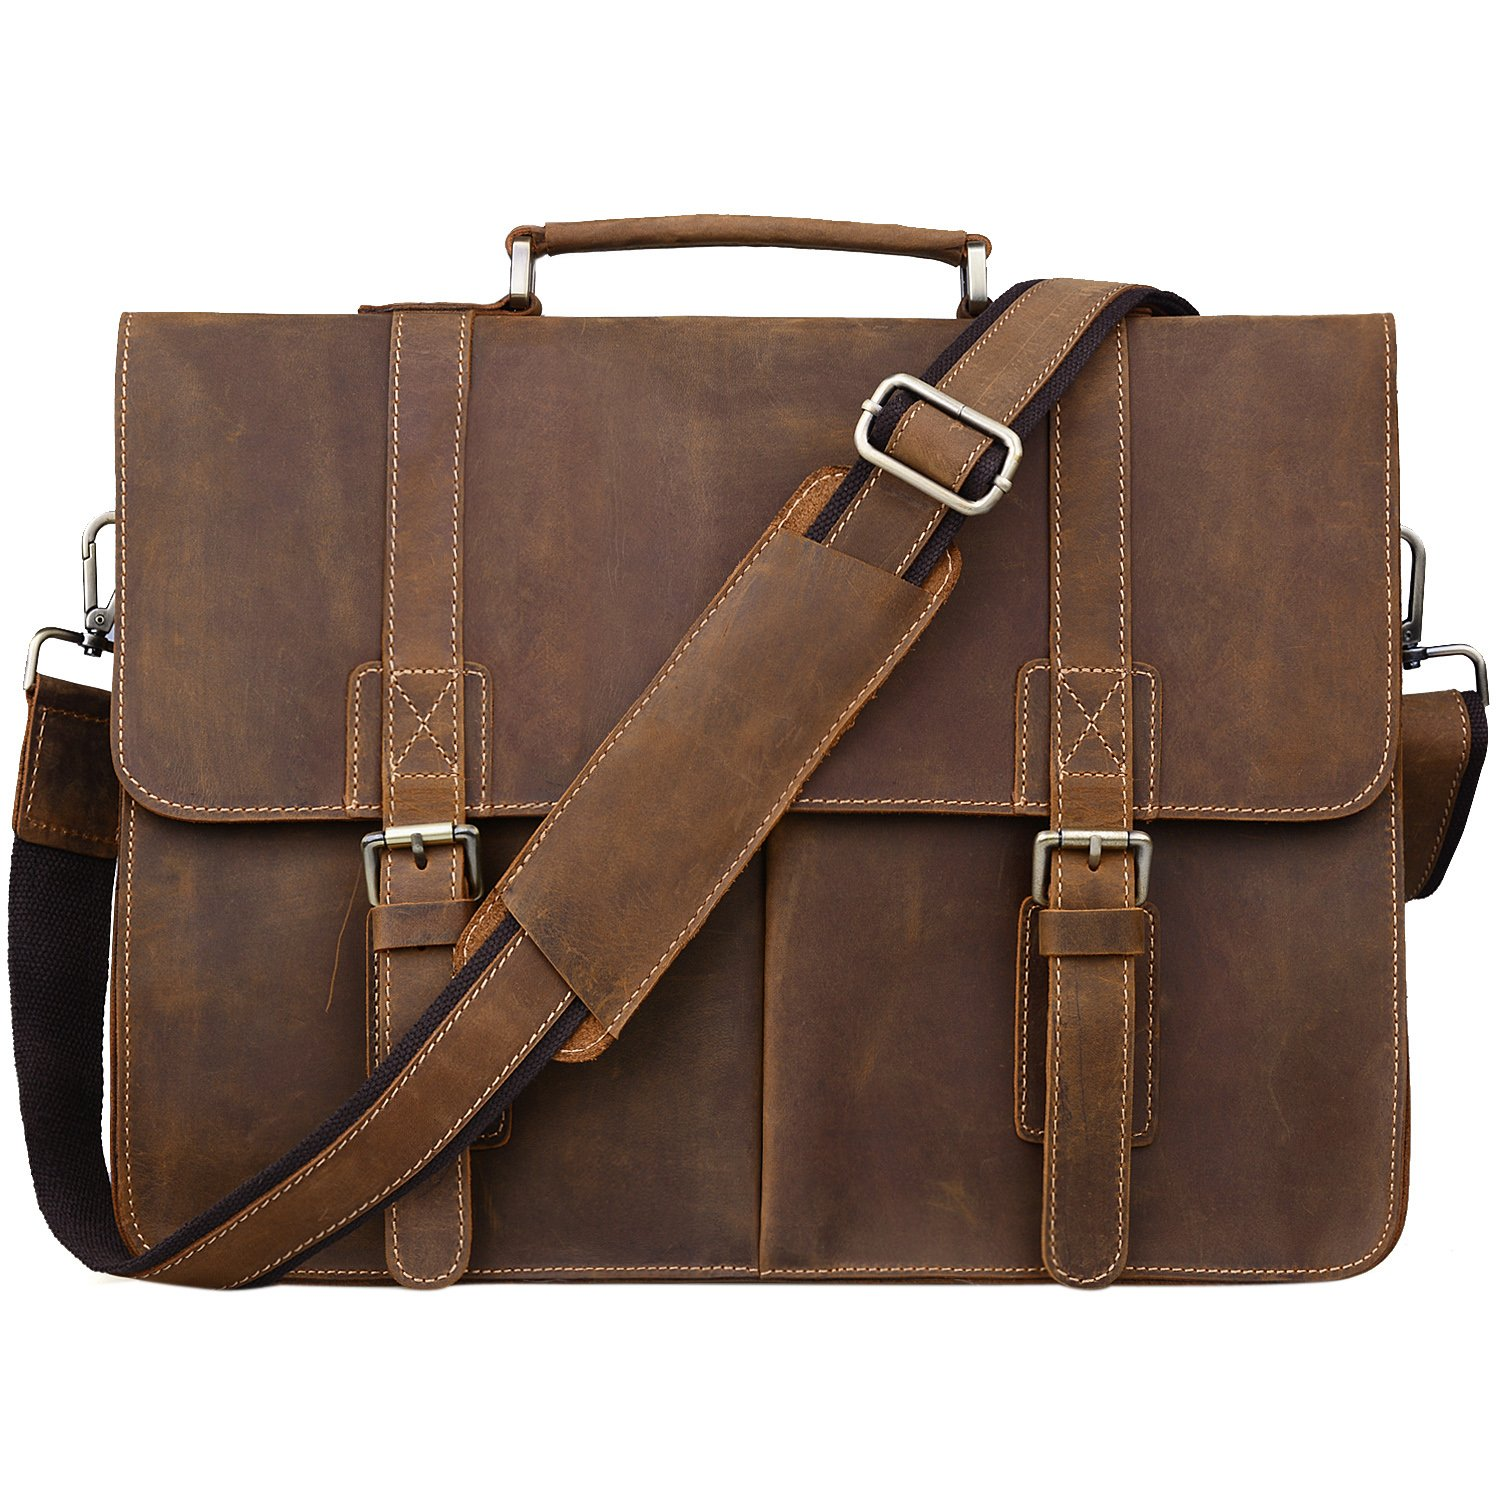 Jack& Chris Men's Leather Briefcase Messenger Bag Business Laptop Bag, N1115